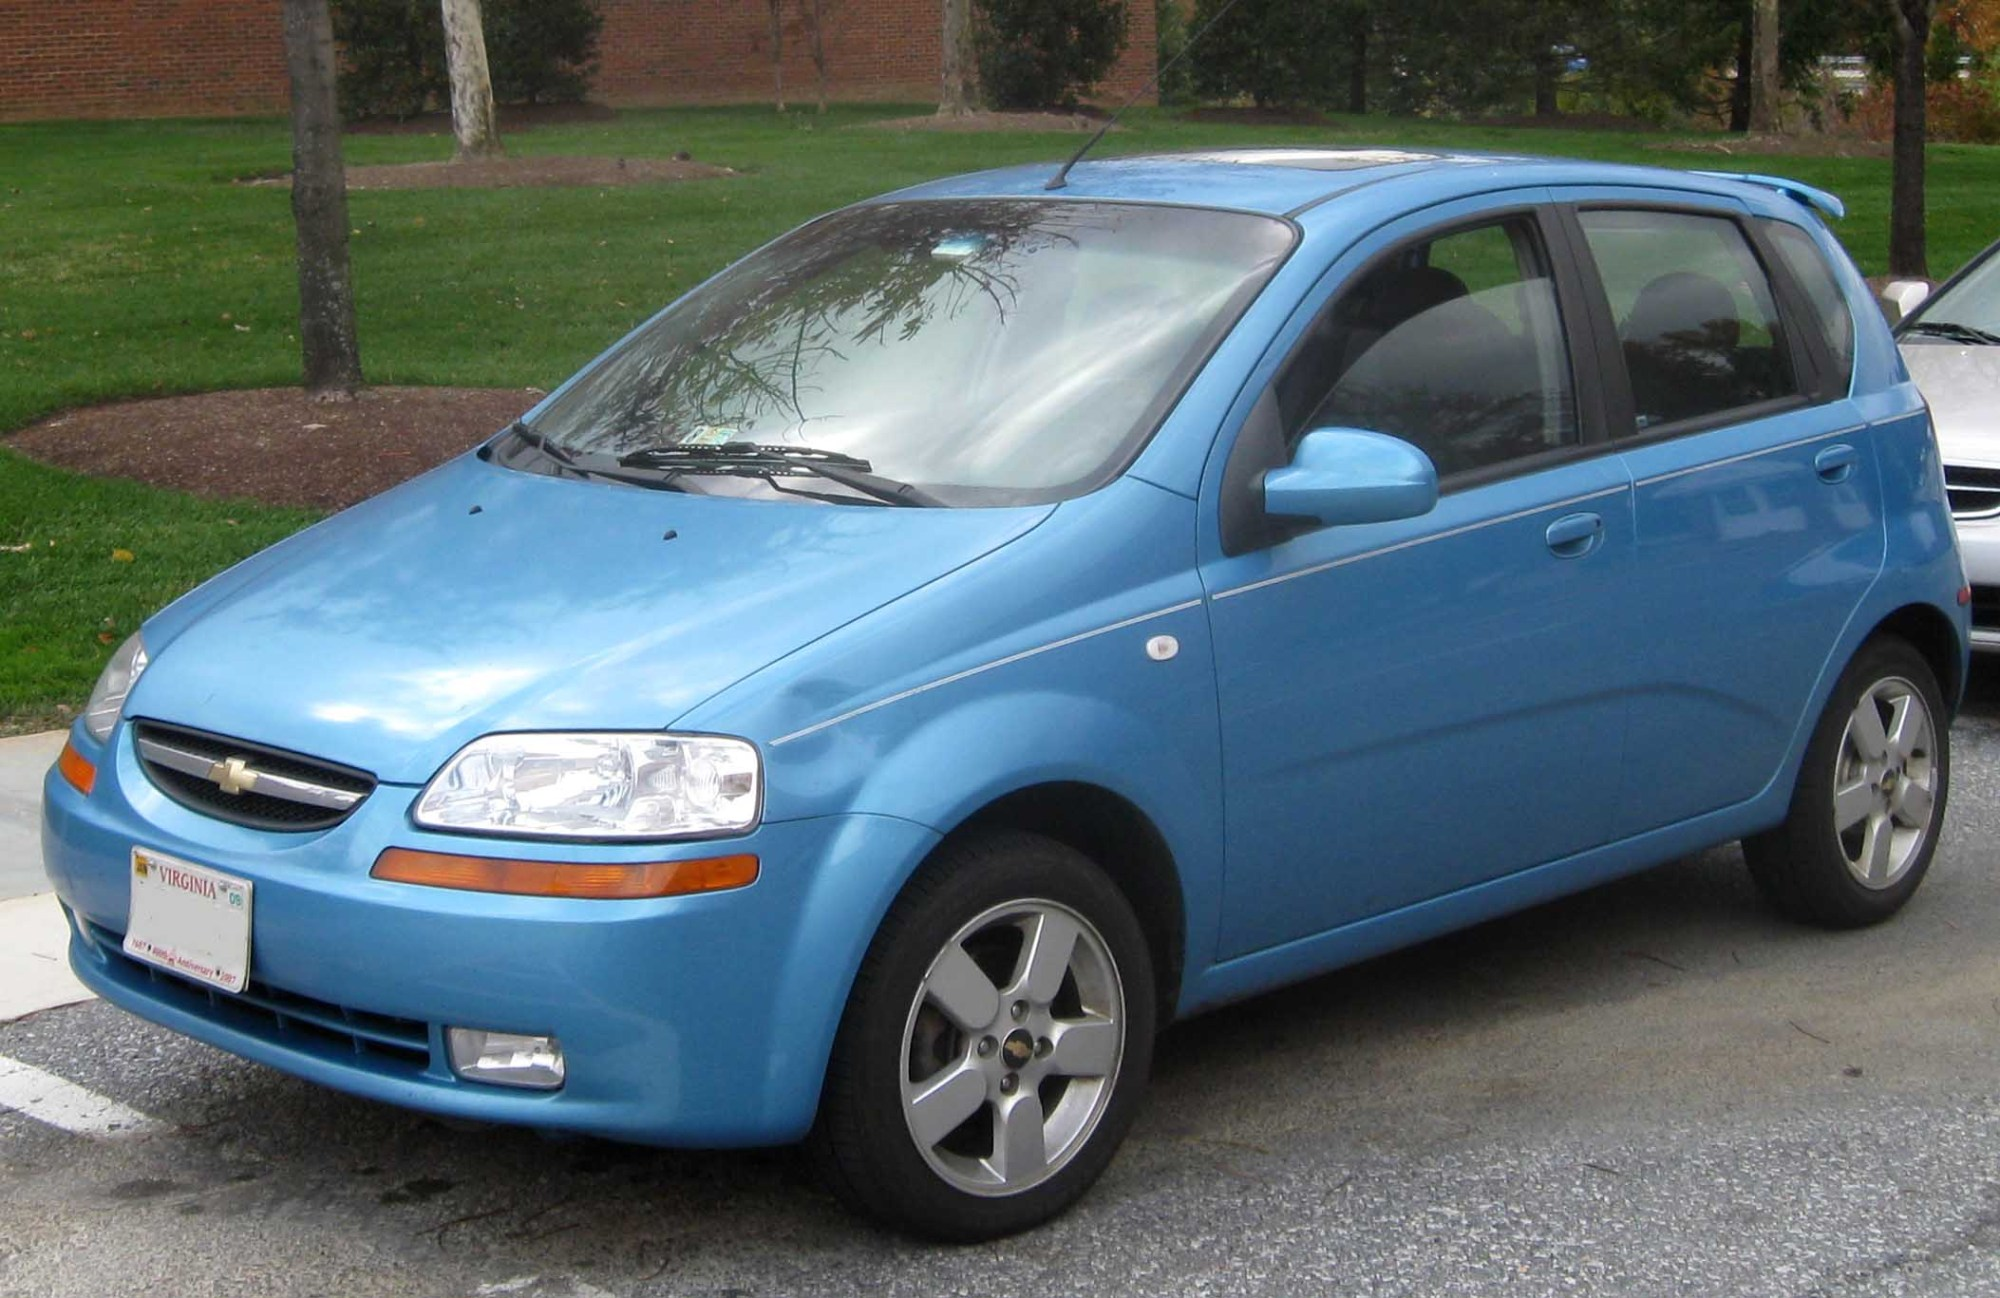 hight resolution of chevrolet aveo t200 wikipedia2011 chevy aveo engine diagram thermostat 17